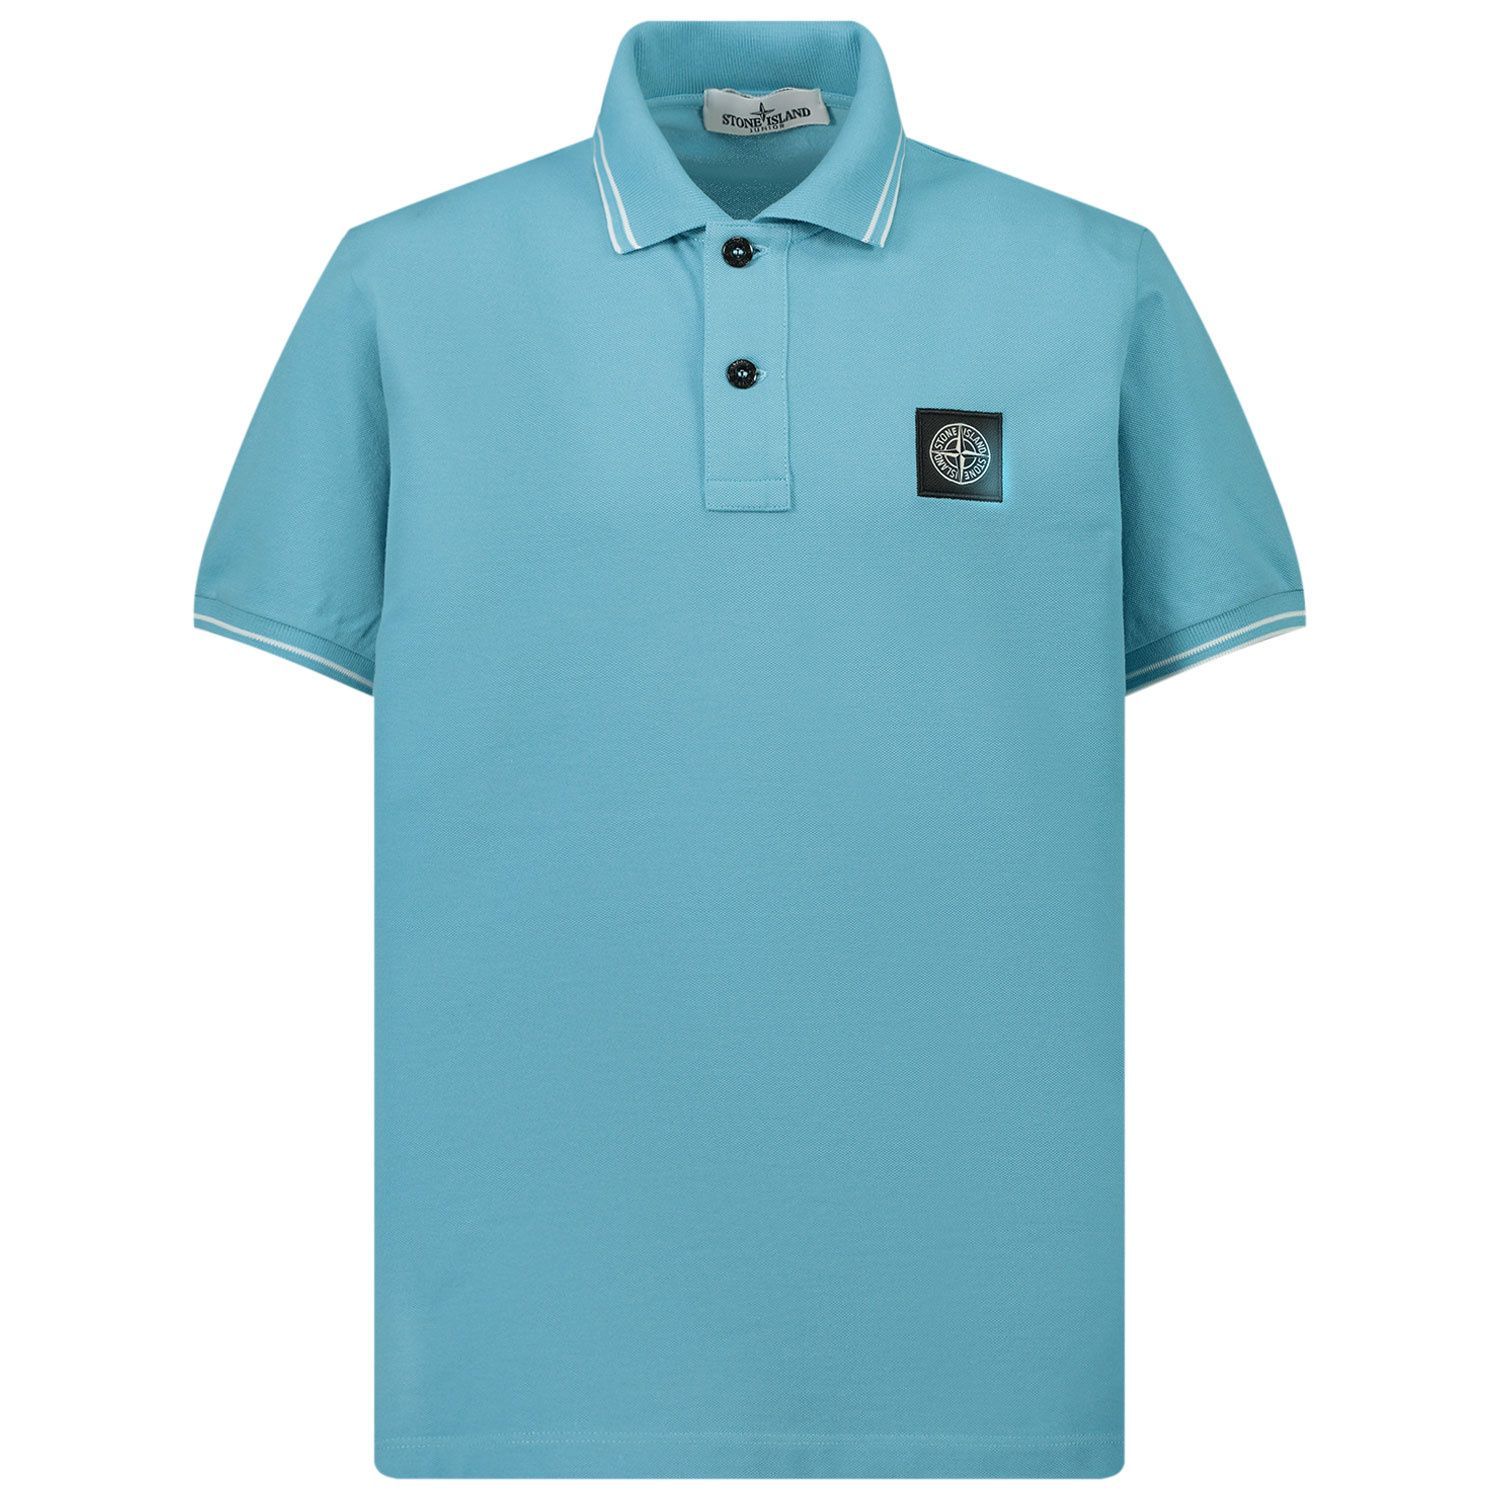 Picture of Stone Island 21348 kids polo shirt turquoise